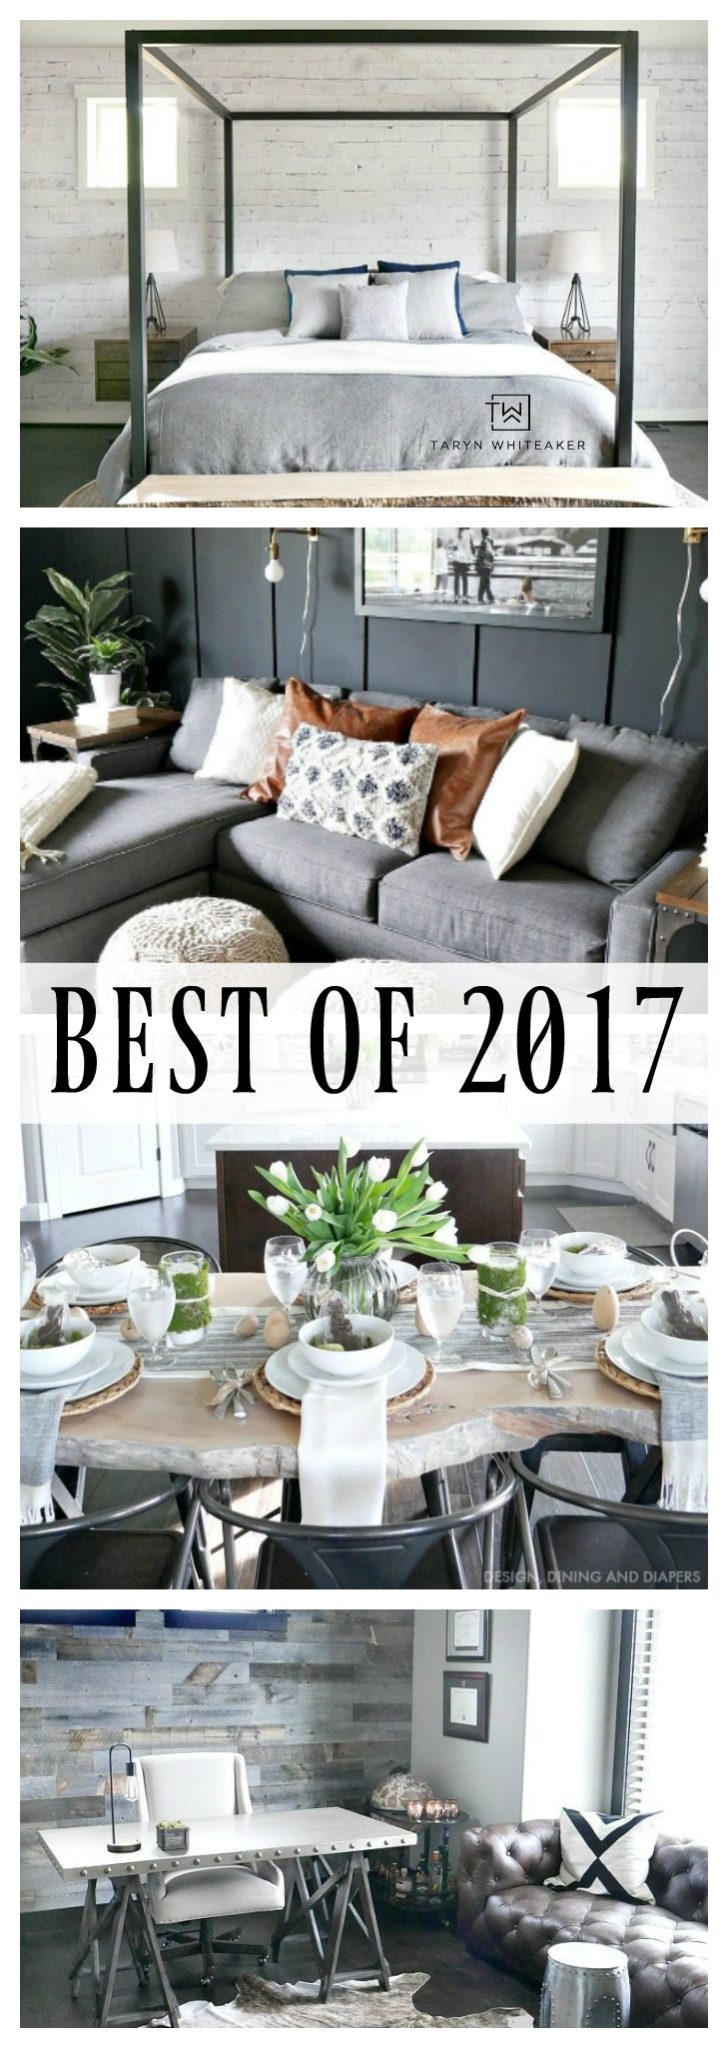 Check out the Best of 2017 from Taryn Whiteaker! From big room reveals, free printables, and decor ideas. Check it out and pin for this year!